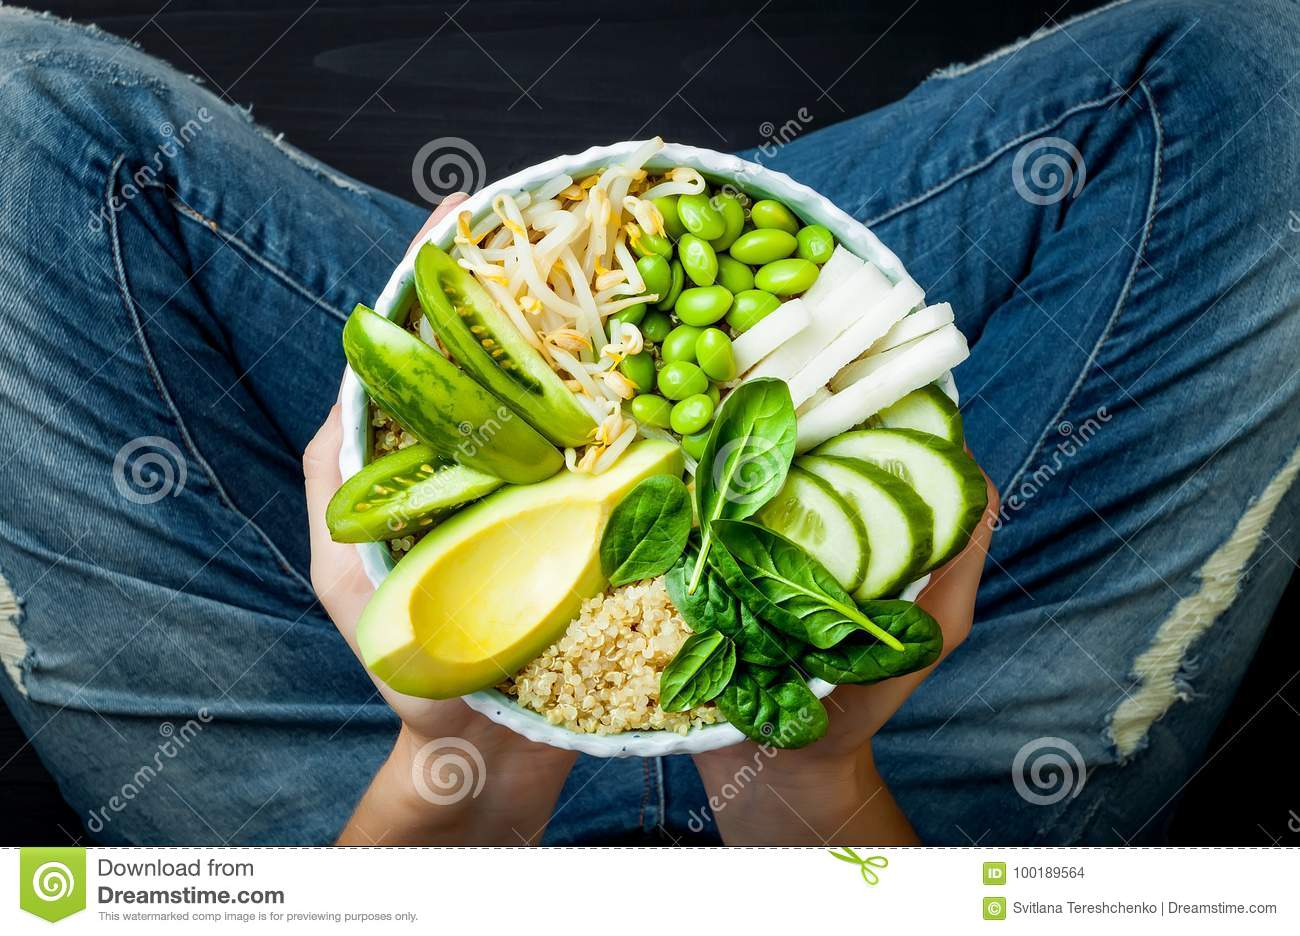 Girl in jeans holding vegan, detox green Buddha bowl with quinoa, avocado, cucumber, spinach, tomatoes, mung bean sprouts, edamame